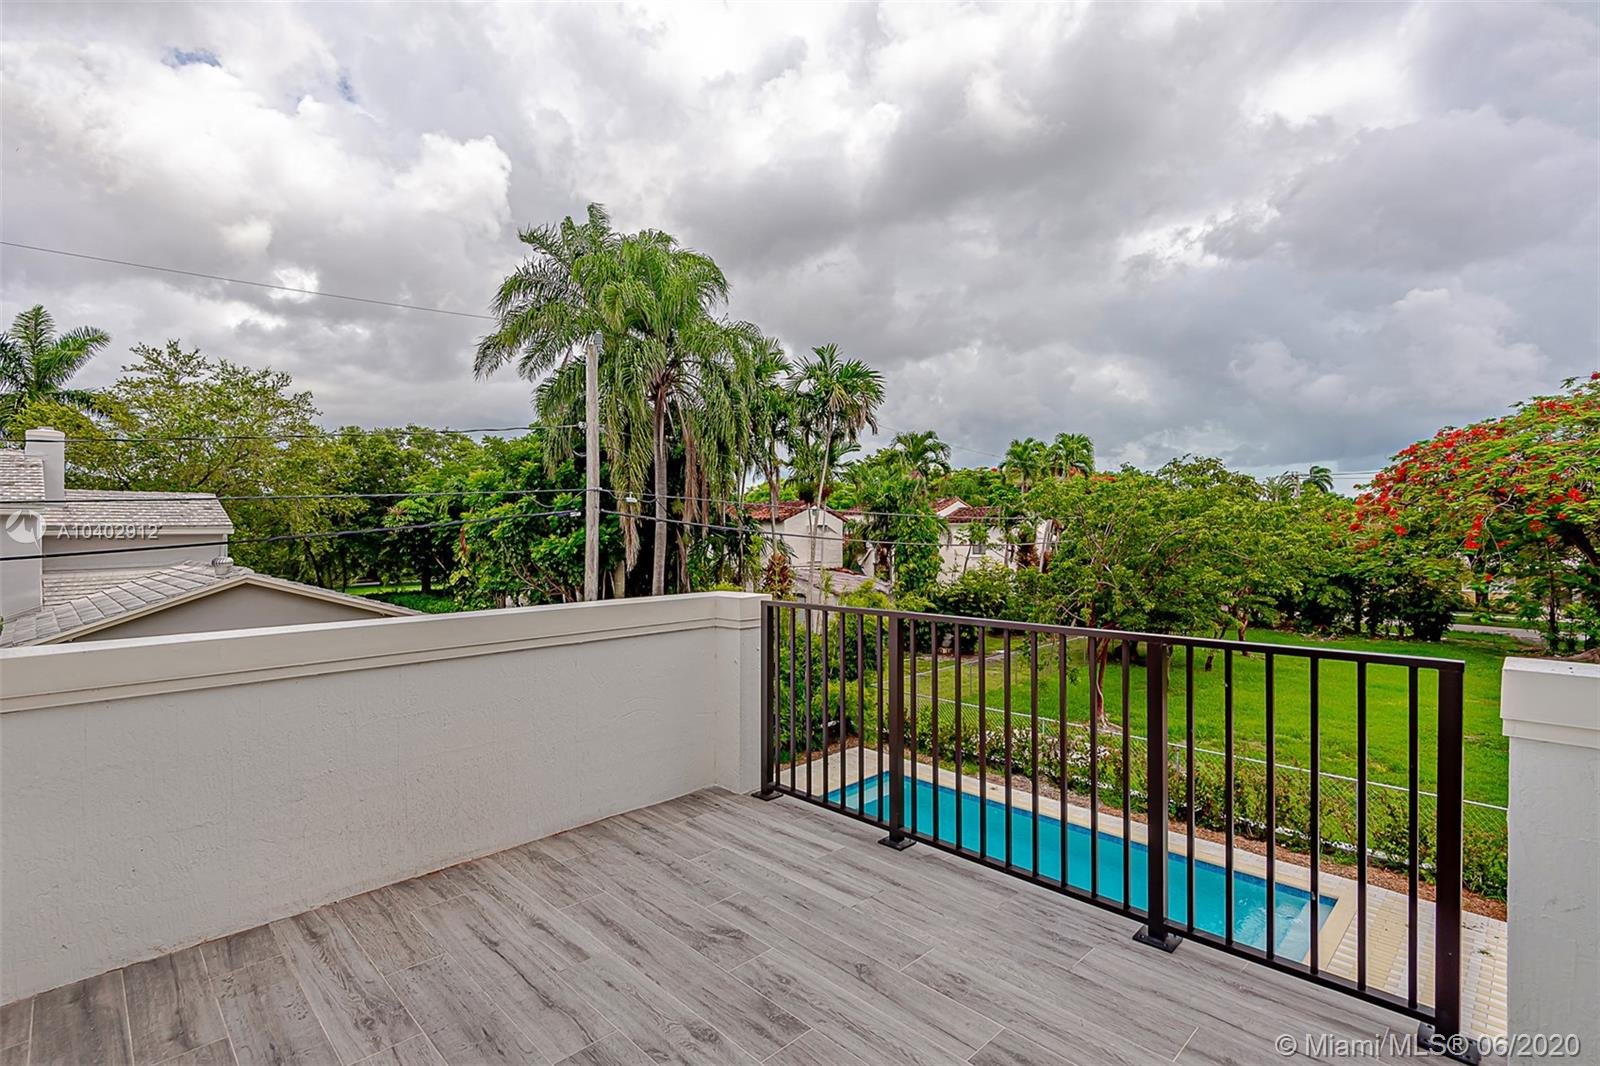 2517 Red Road, Coral Gables FL, 33134